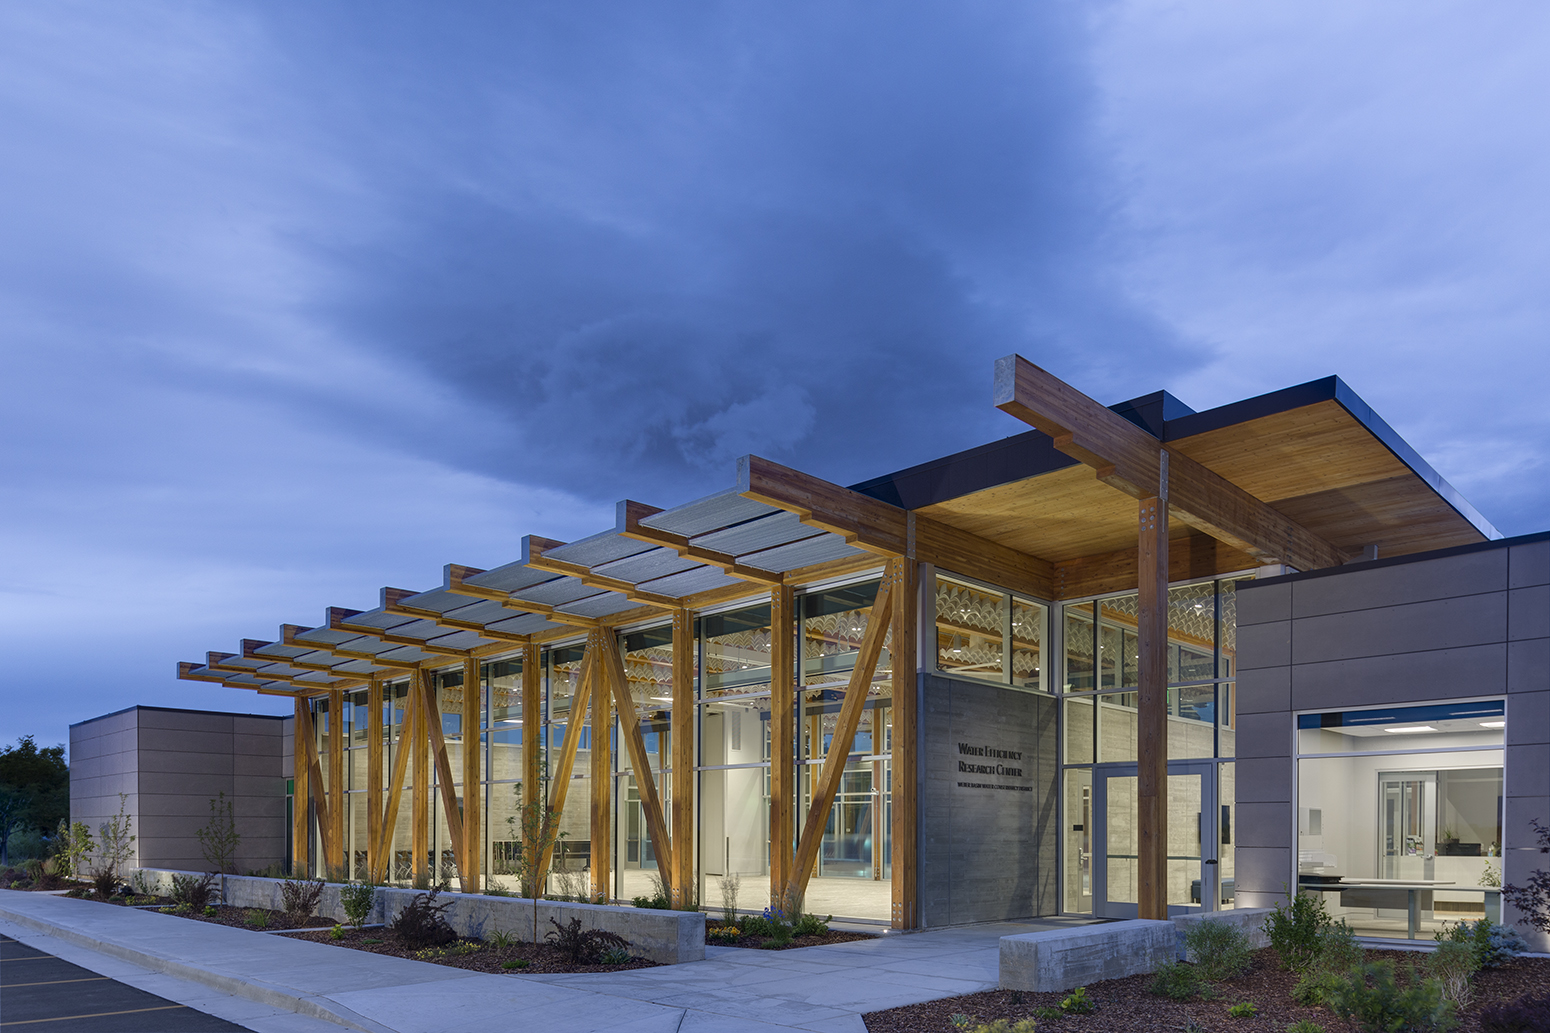 Weber Basin Water Efficiency Research Center for GSBS Architects.Architectural Photography by: Paul Richer / RICHER IMAGES